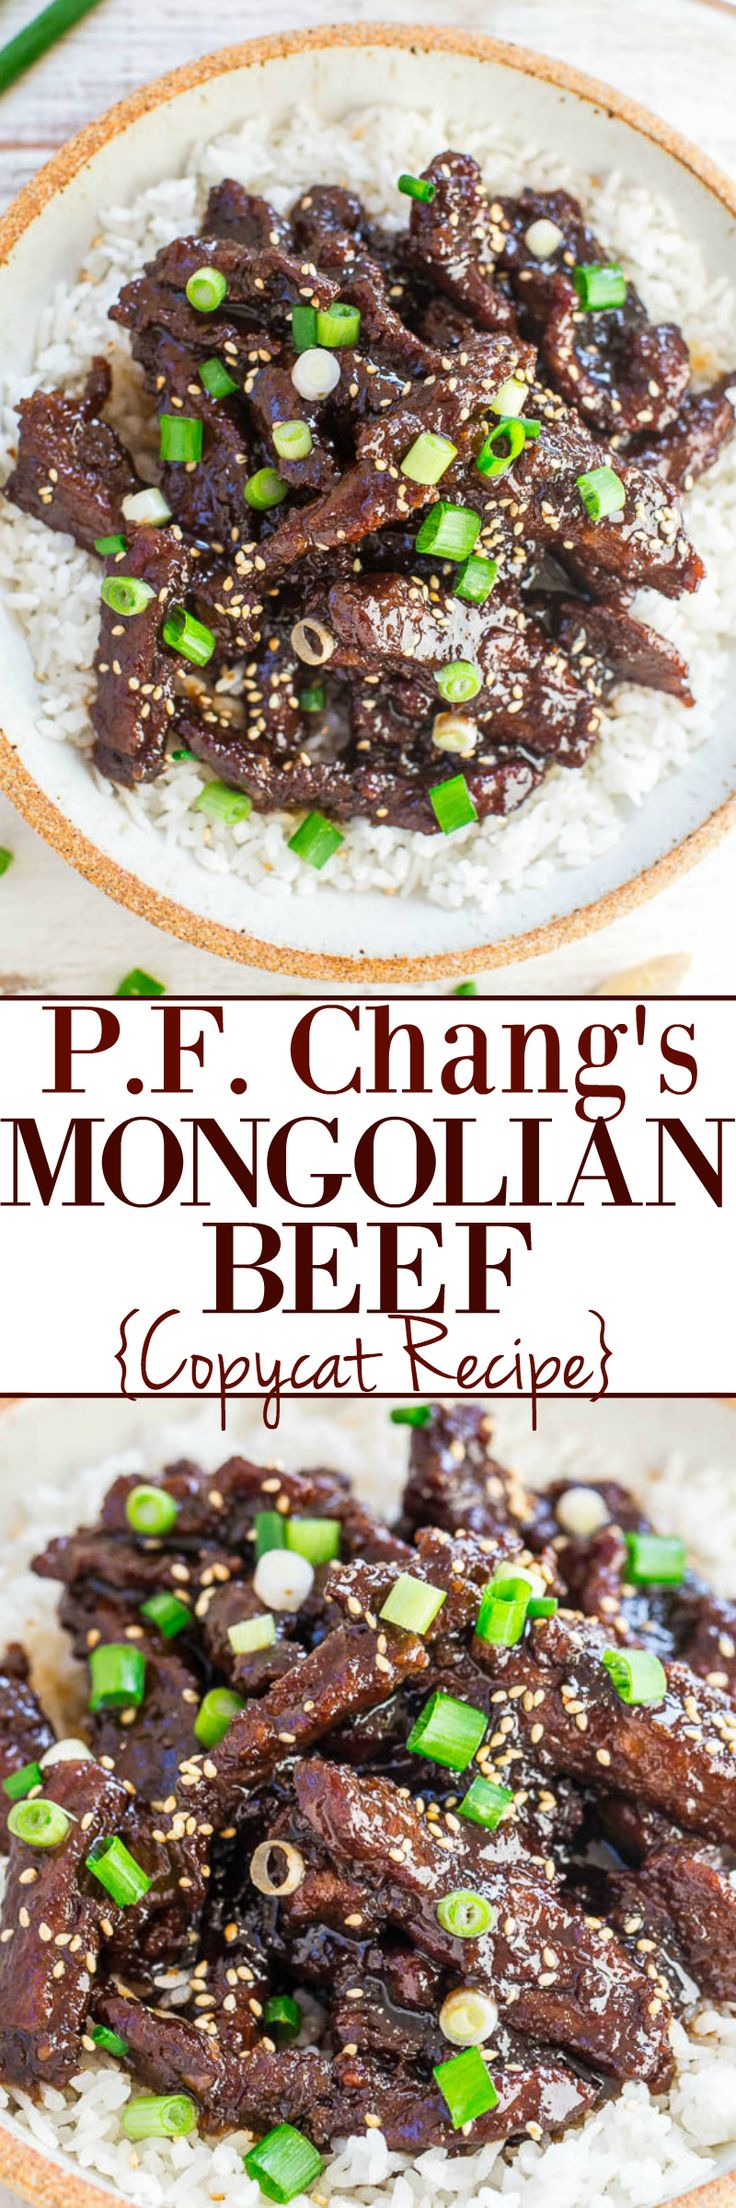 P.F. Chang's Mongolian Beef (Copycat Recipe) - Make the restaurant favorite AT HOME in 20 minutes!! EASY and it has so much FLAVOR! Tastes even BETTER than the restaurant version!!